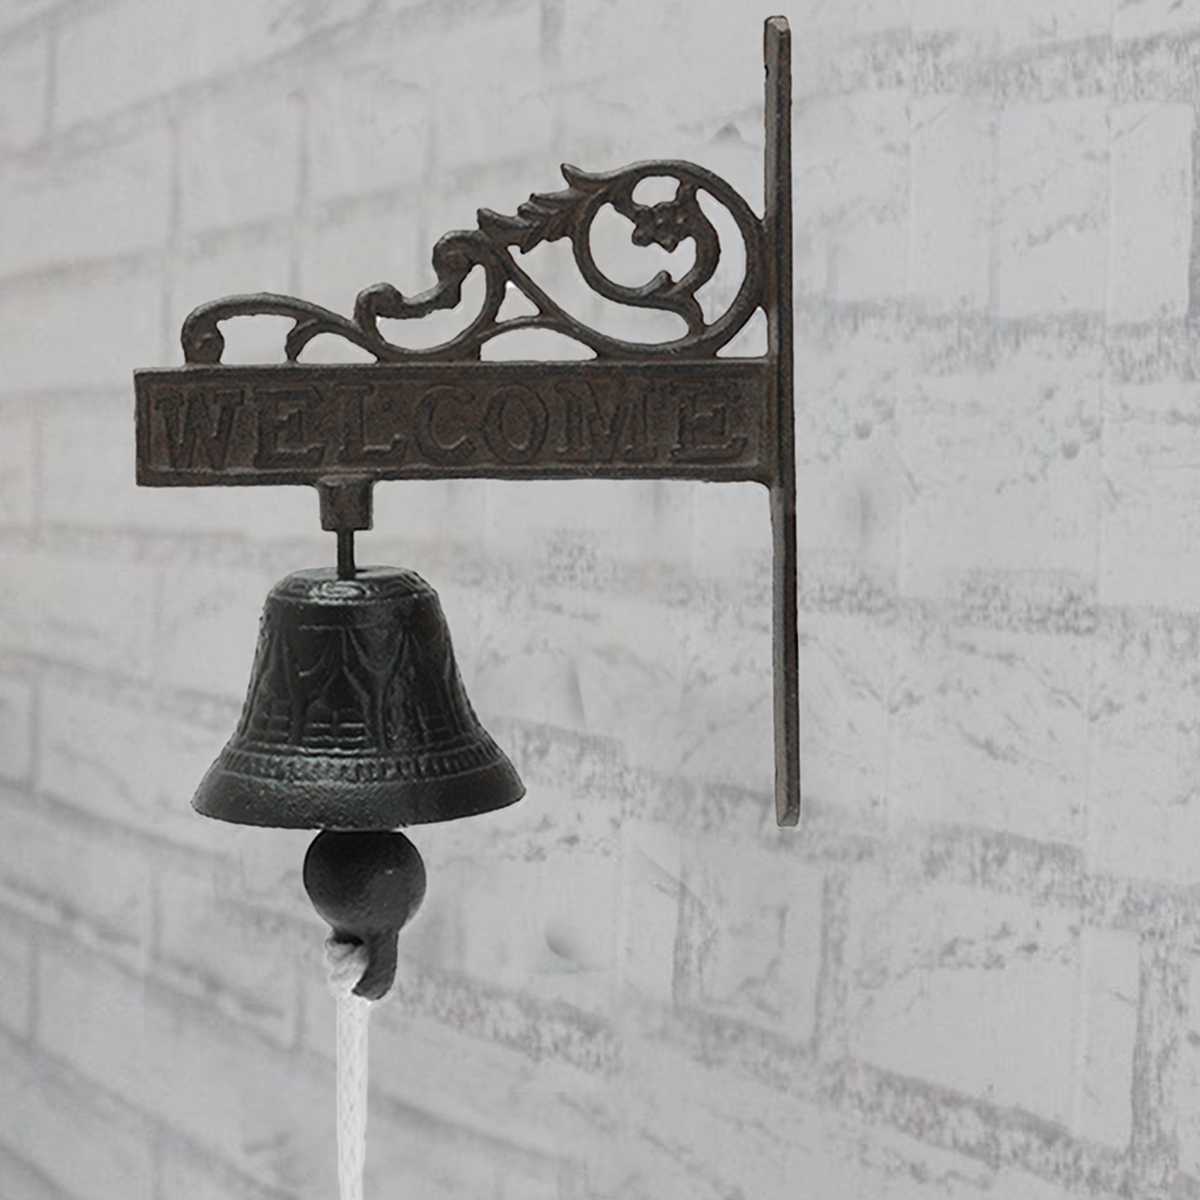 Nordic Style Vintage Brown Metal Iron Door Bell Wall Mounted Welcome Cast Wireless DoorBell Porch Garden Decoration new vintage style rusted dog cast iron door bell wall mounted garden decoration access control